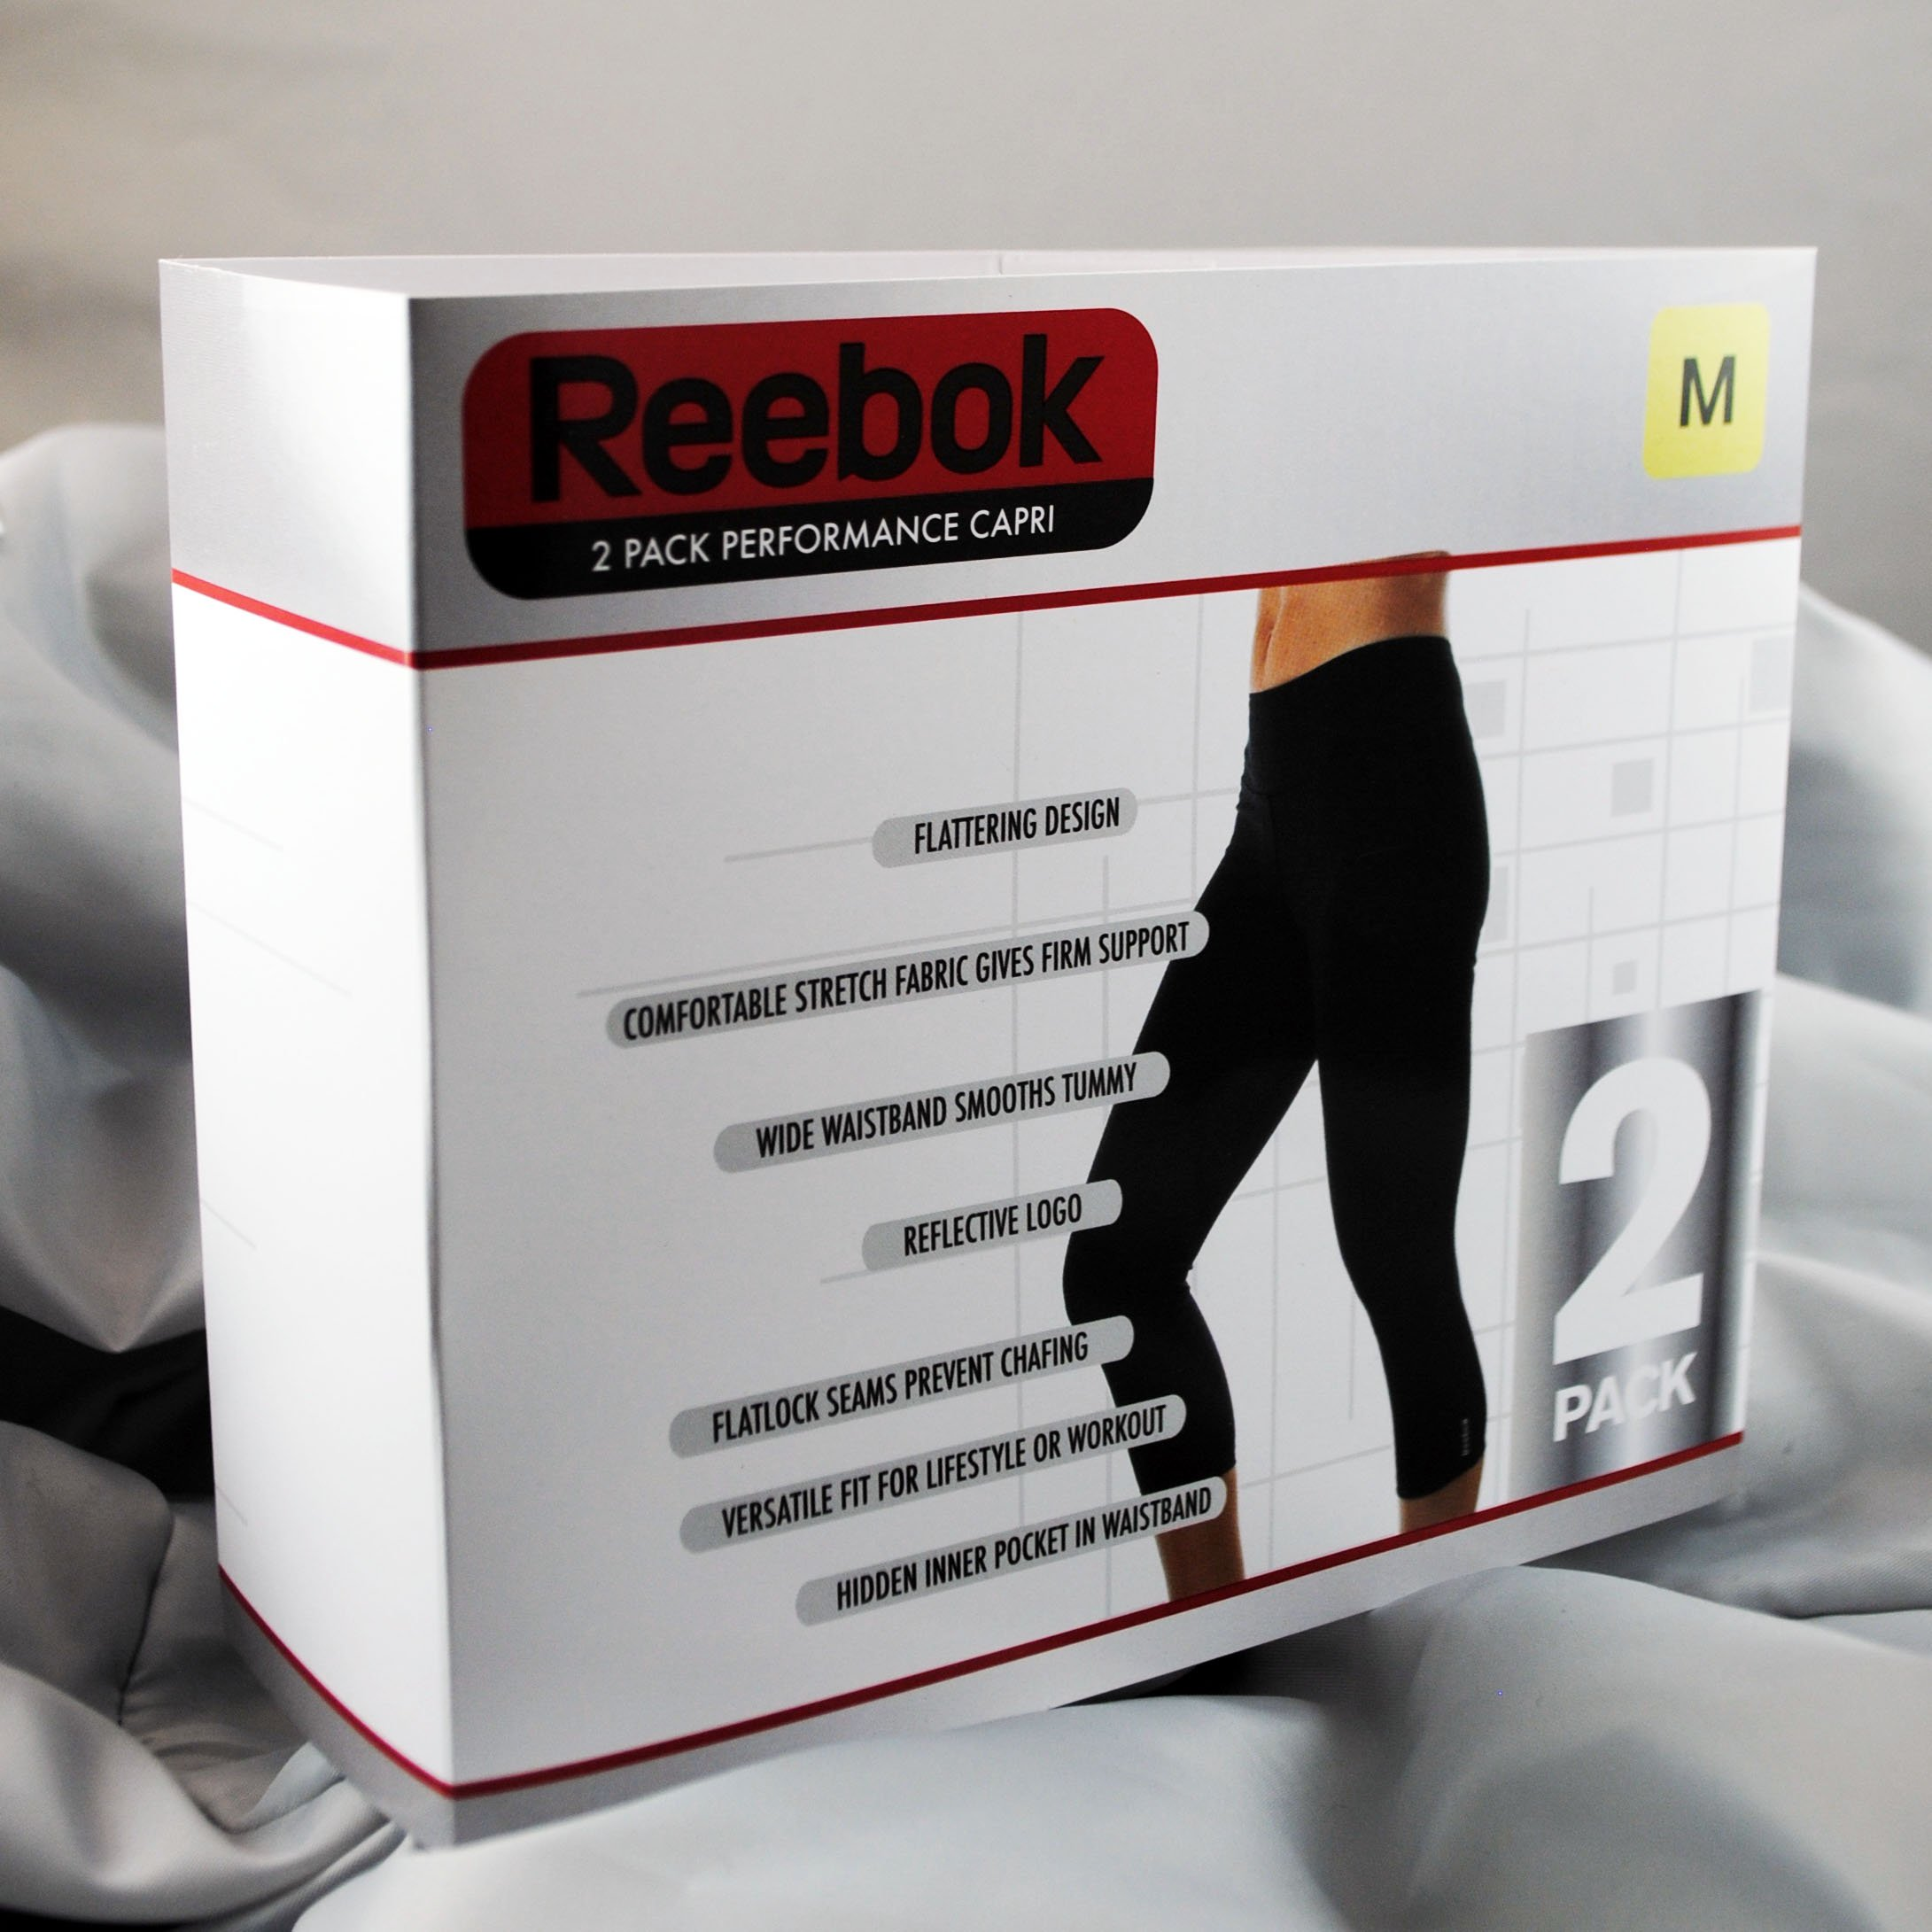 Reebox 2 Pack Performance Capri Packaging Box